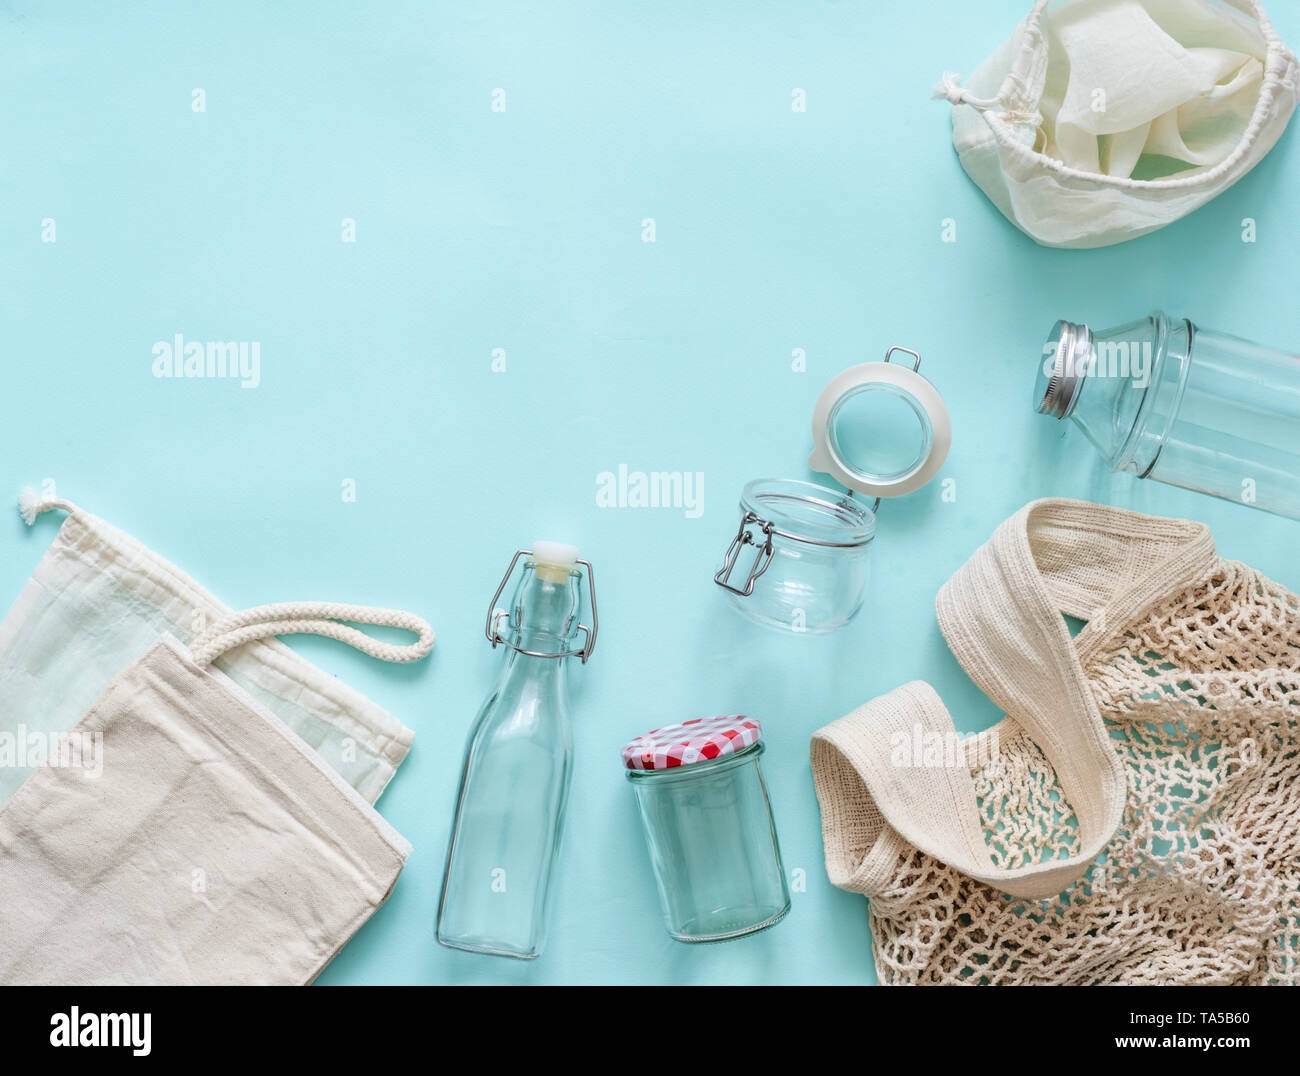 Zero waste concept. Textile eco bags, glass jars and glass bottles on blue background with copy space for text or design. Eco friendly and reuse conce - Stock Image